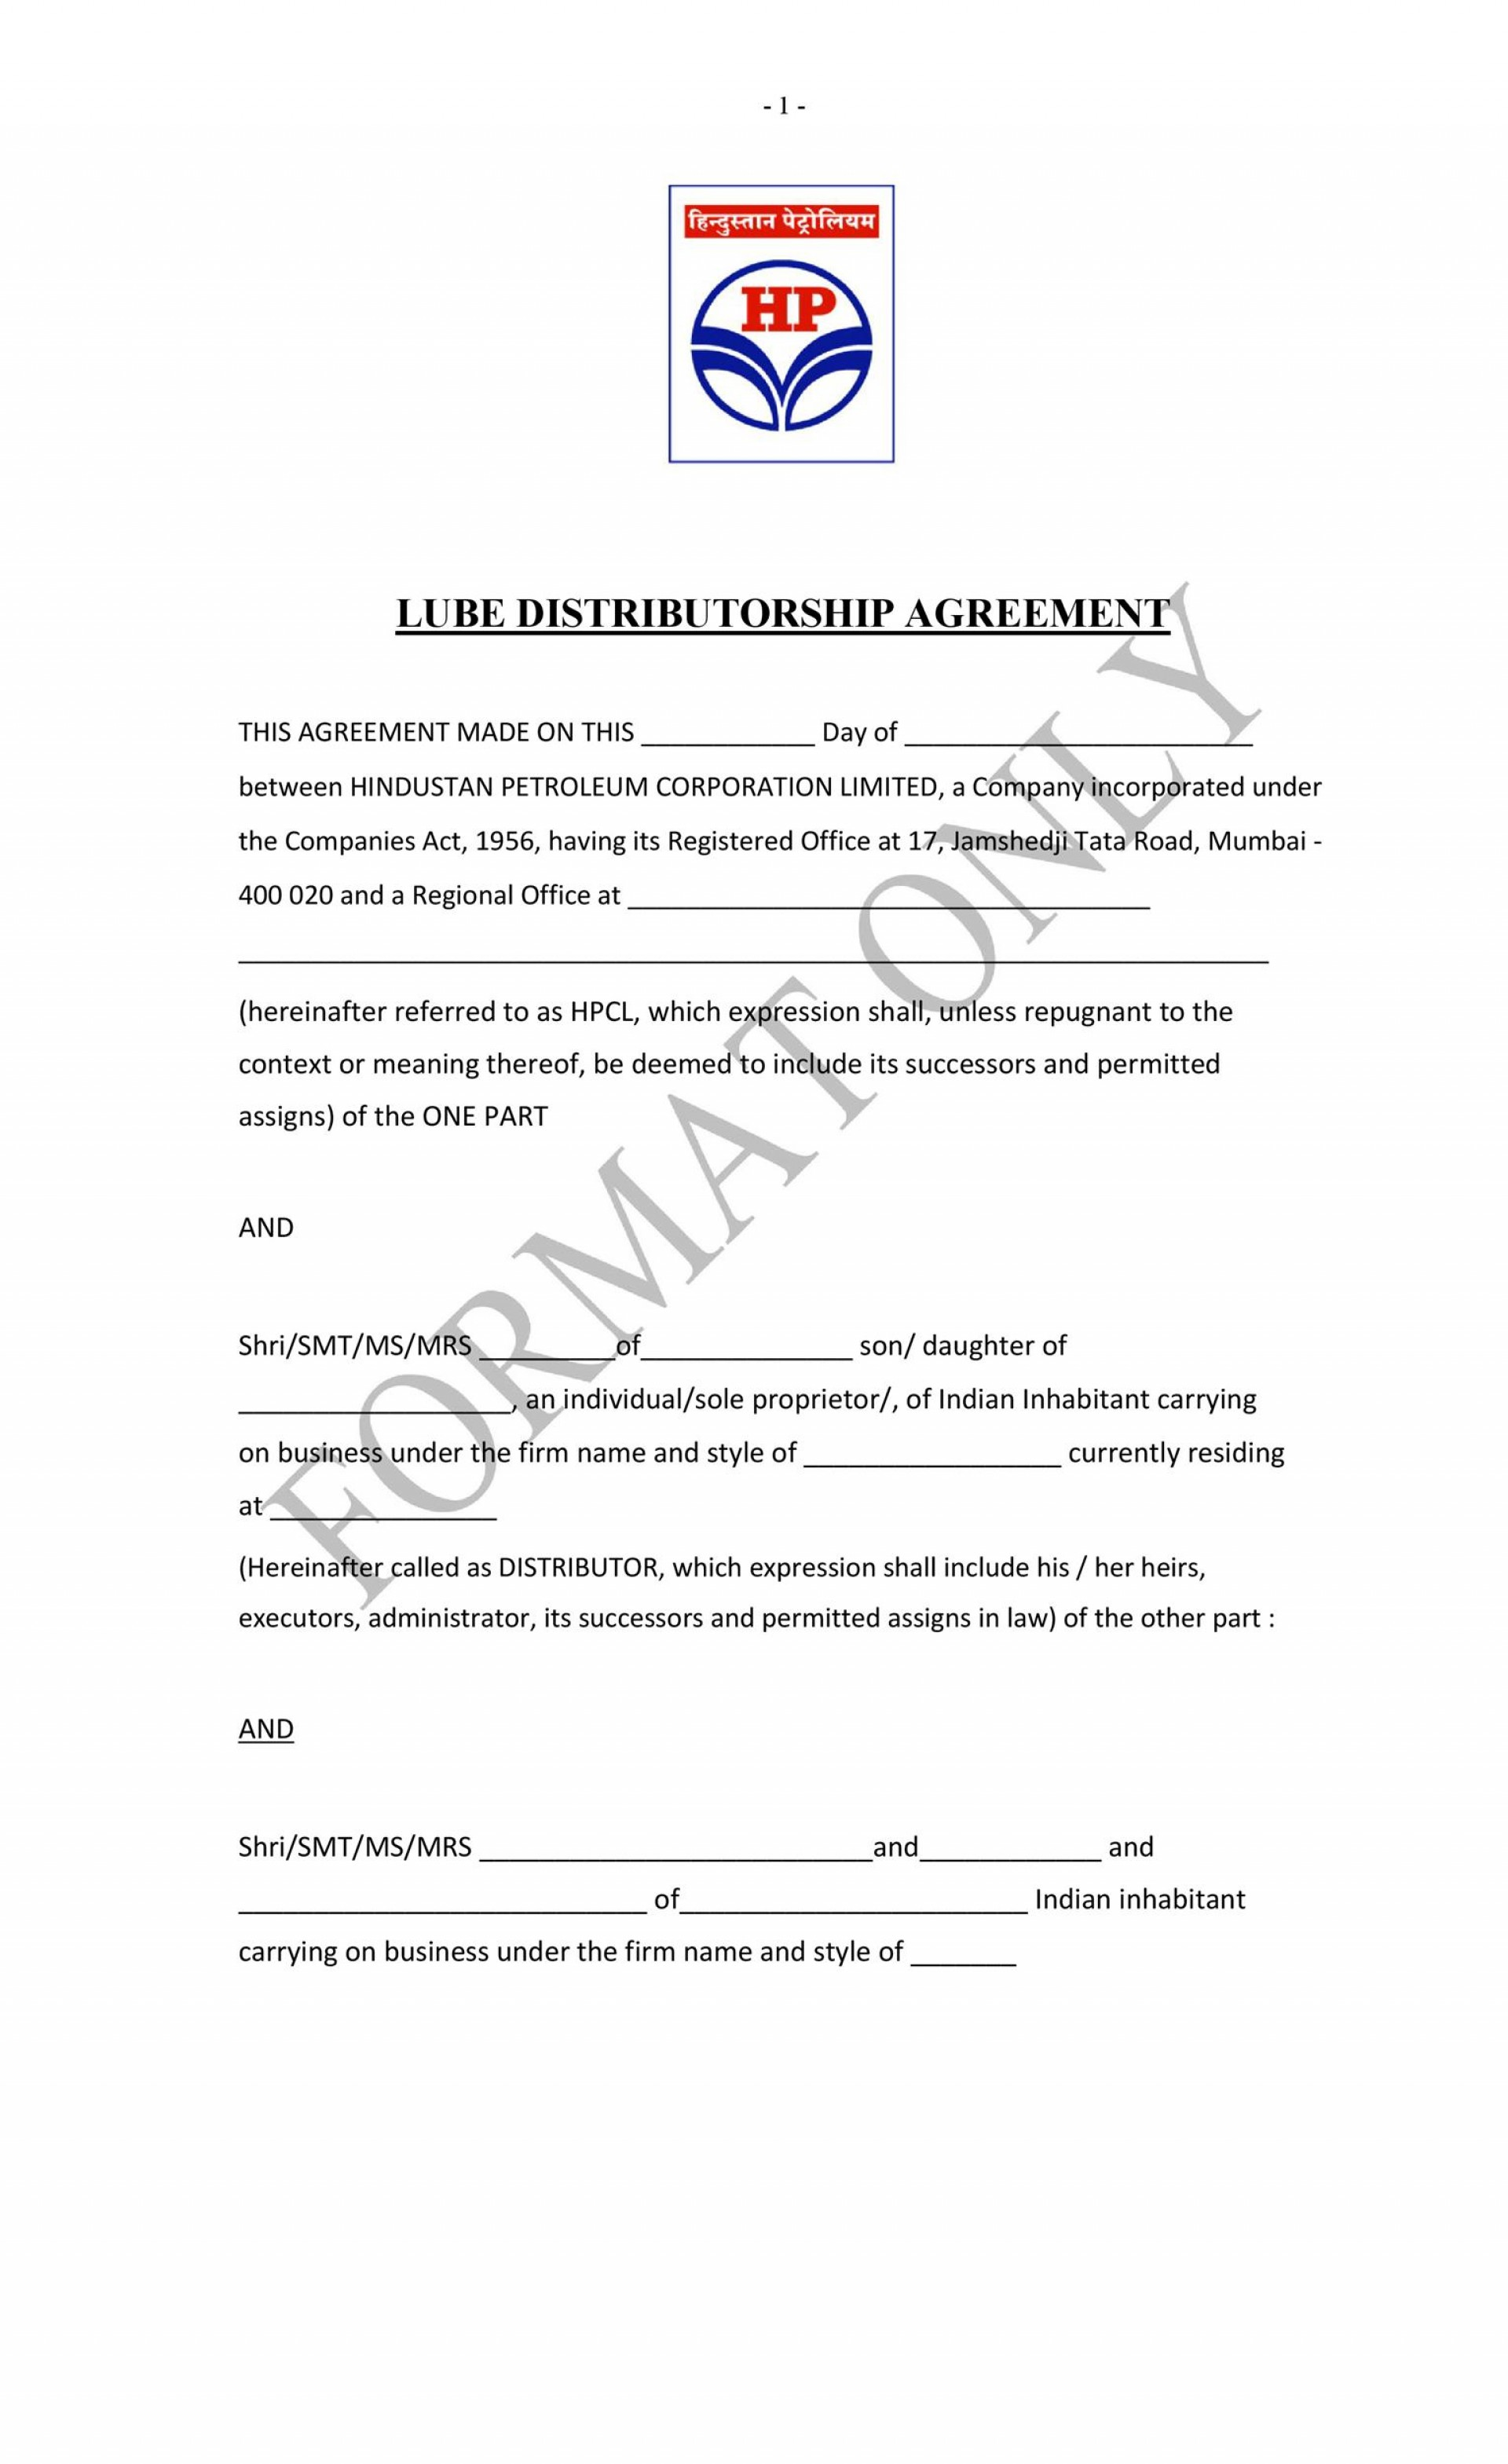 007 Incredible Exclusive Distribution Contract Template High Resolution  Agreement South Africa Non Free Uk1920